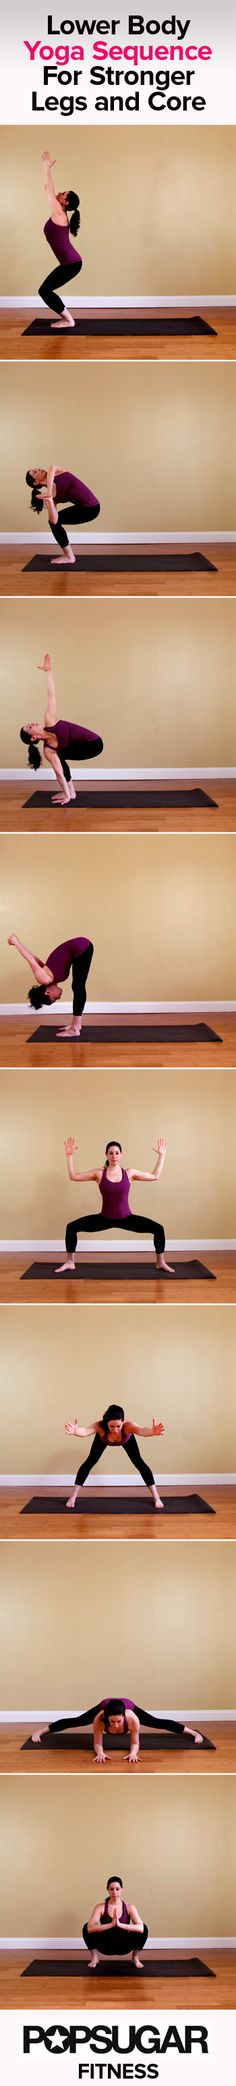 Yoga Moves For Stronger Legs and Core This looks and feels easy until you are called to do it in repetition. It's hard as heck, but pays off!